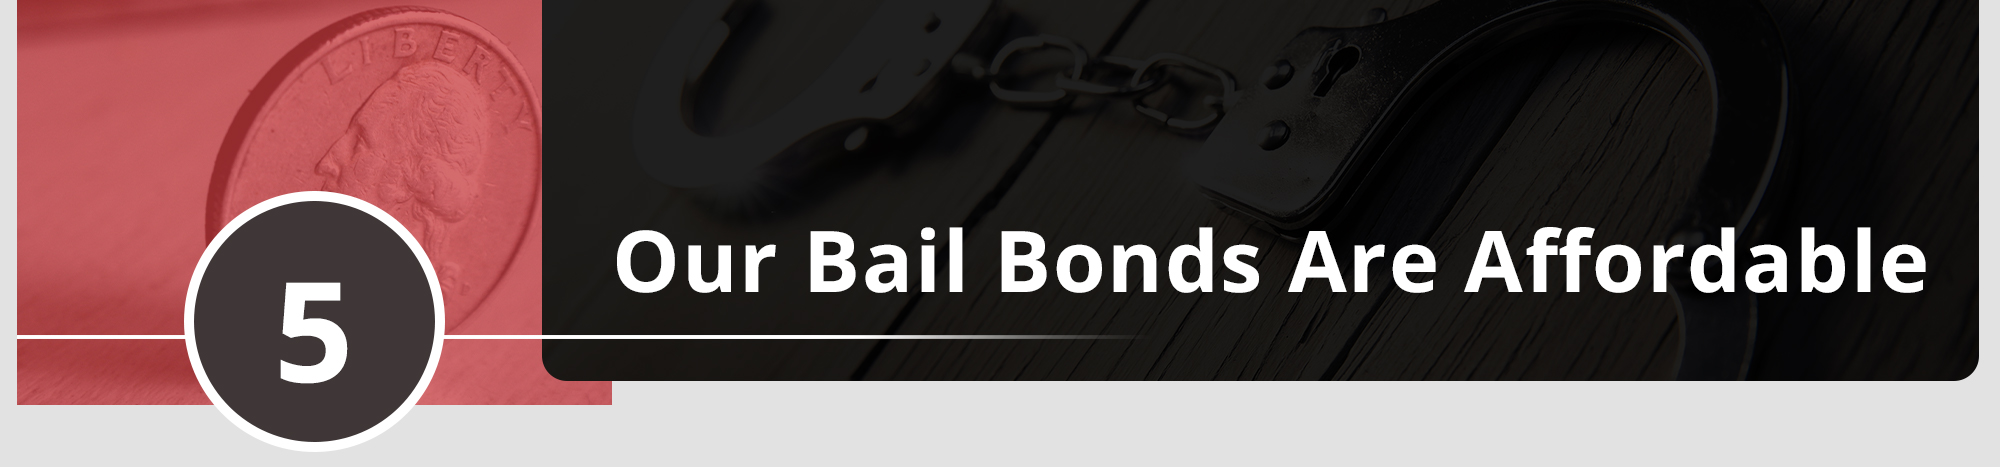 Our Bail Bonds Are Affordable